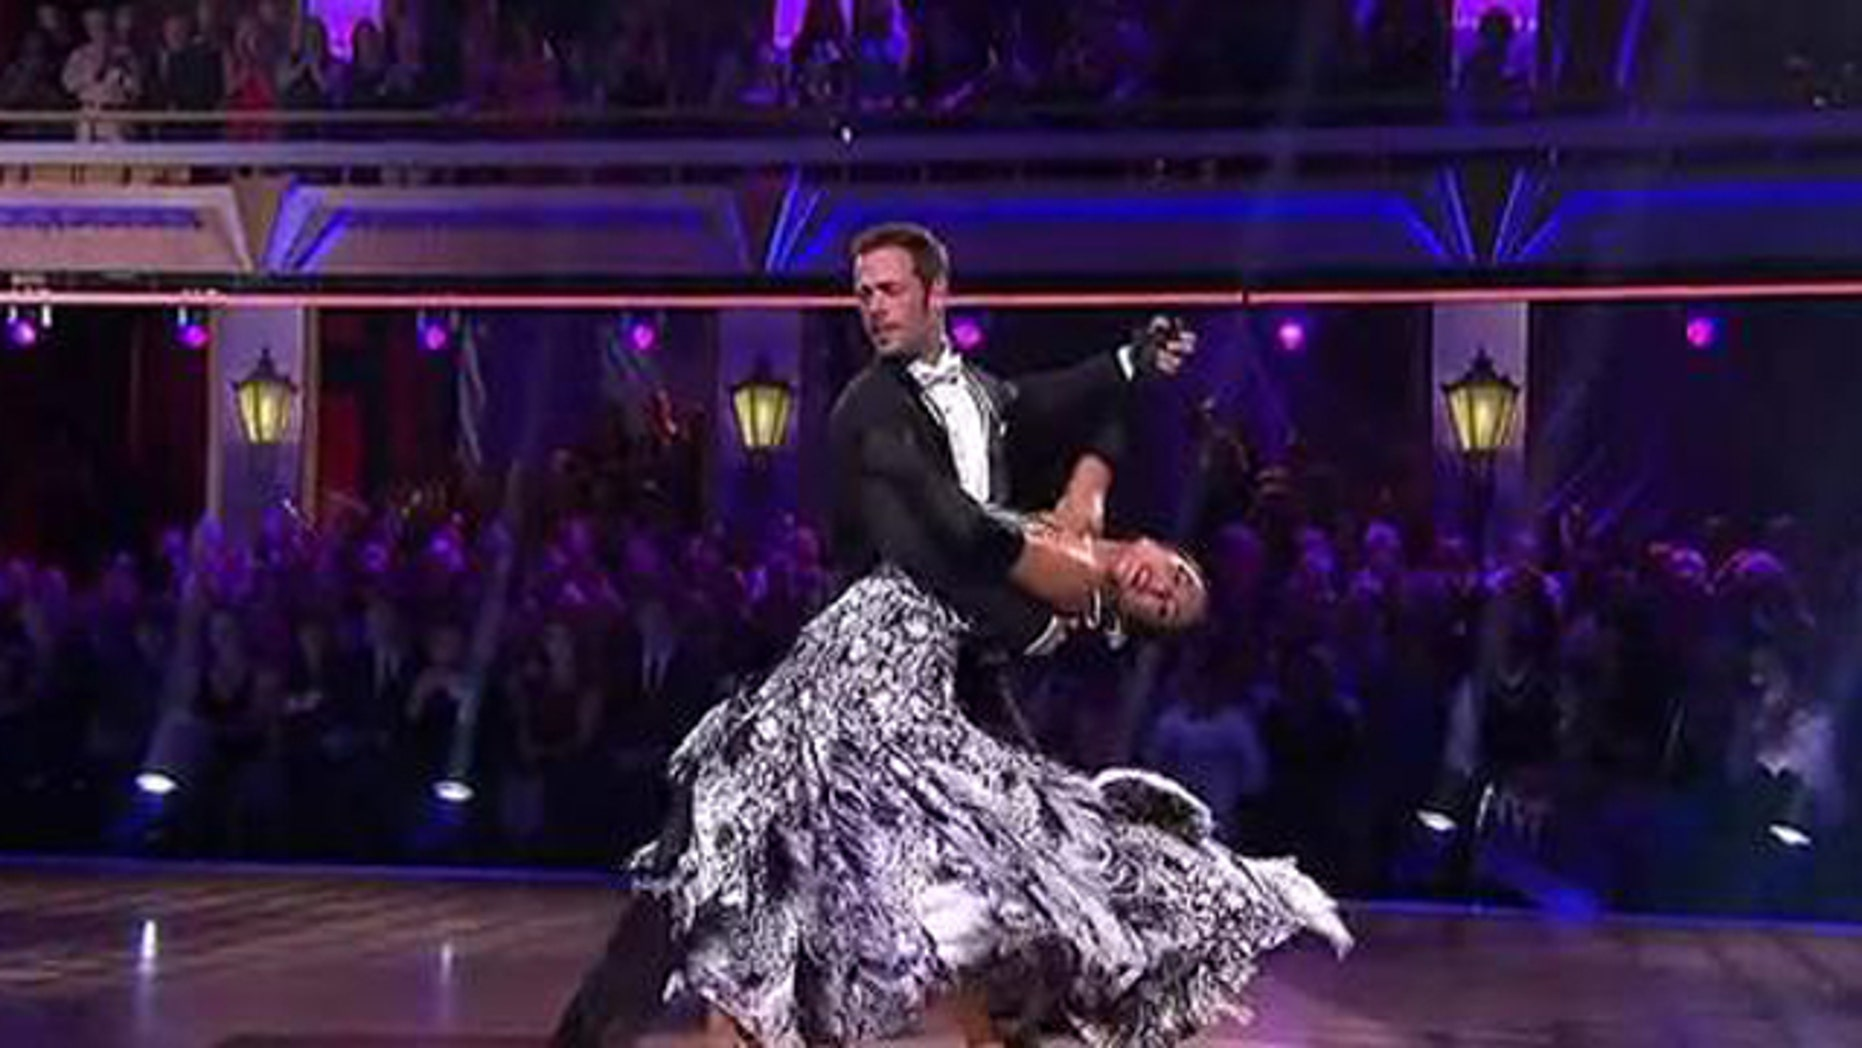 May 8, 2012: Cuban actor William Levy nails a perfect Foxtrot Monday night on Dancing With the Stars.